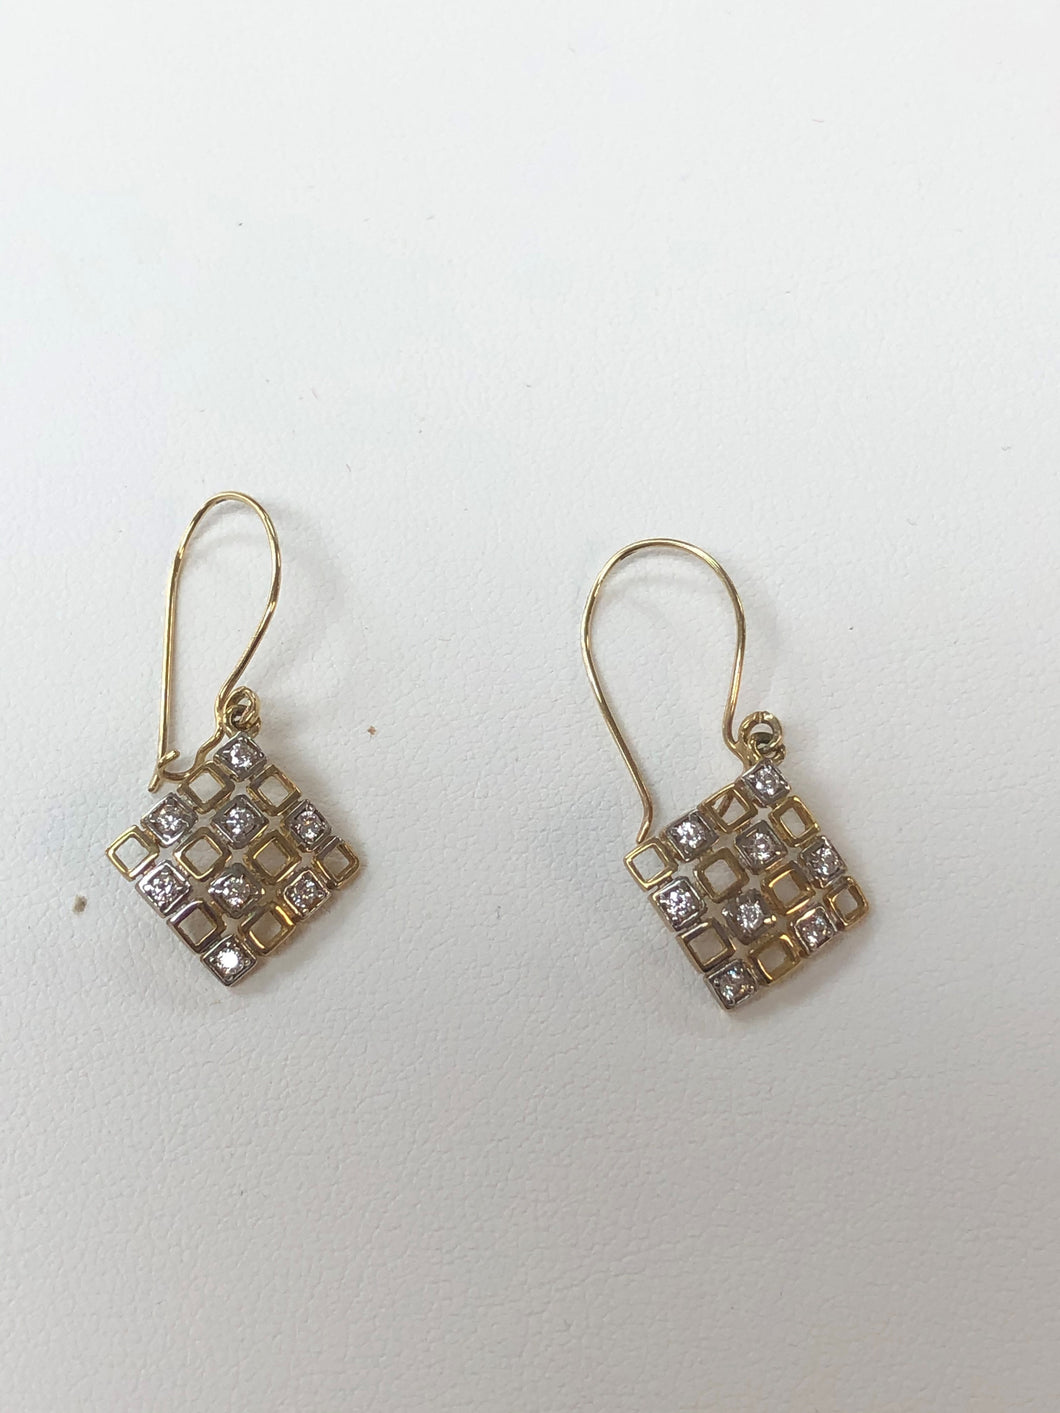 10k Yellow Gold Diamond Square Earrings